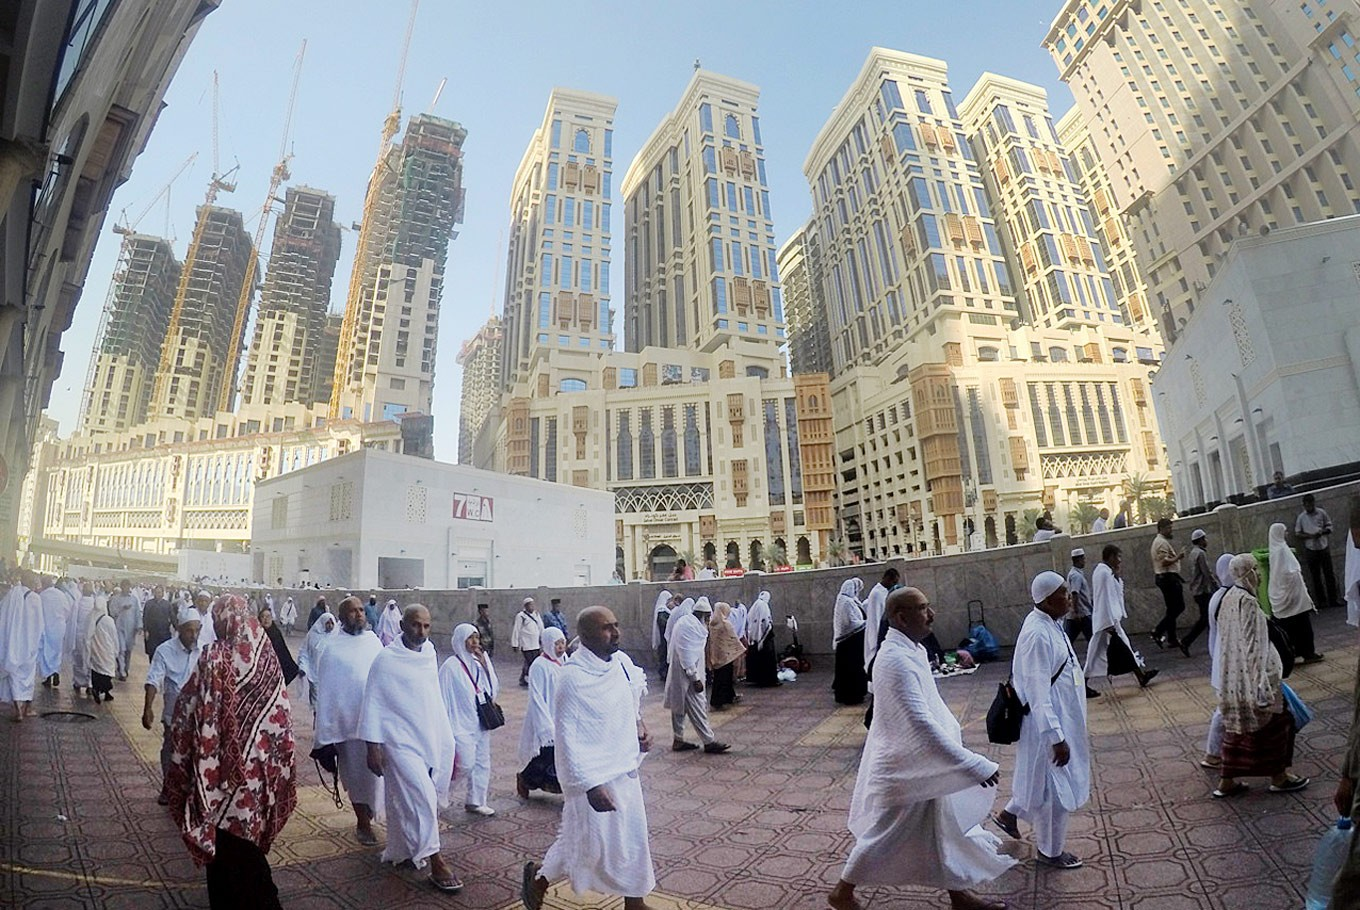 Rising up: New high-rise buildings stand in Mecca as the city is increasing its capacity to accommodate more pilgrims. The Saudi Arabian monarchy plans to welcome some 30 million pilgrims a year, both for the haj and the year-round umrah, by 2030.